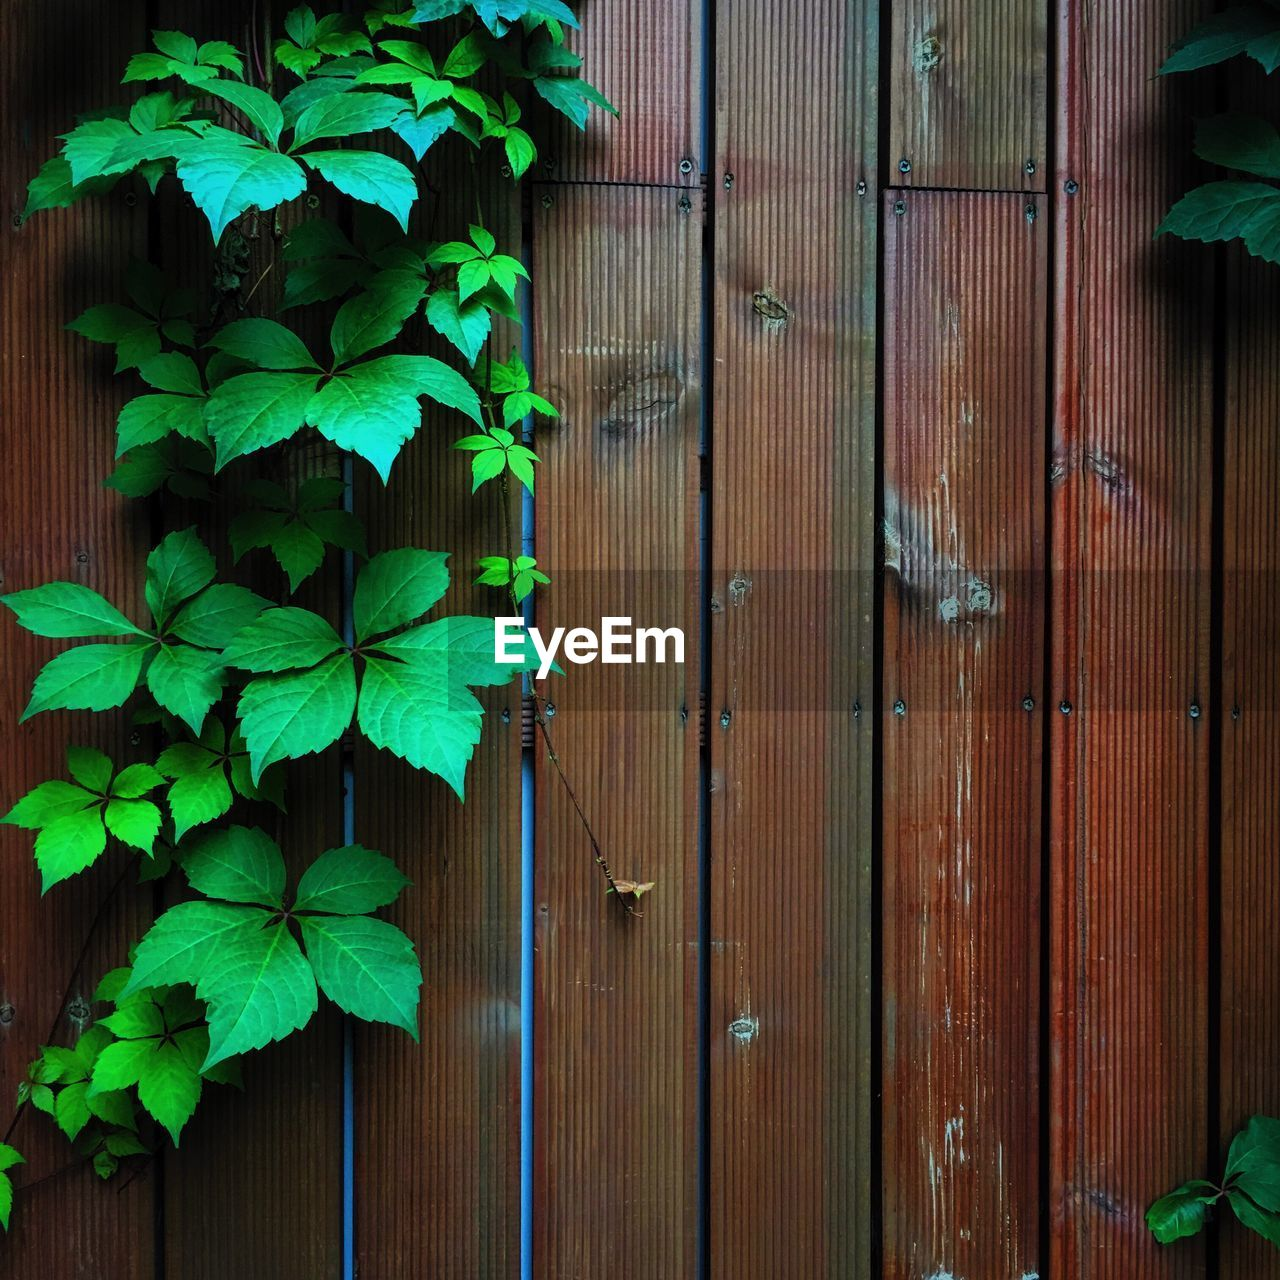 leaf, plant part, growth, wood - material, plant, green color, day, entrance, no people, door, nature, ivy, close-up, architecture, outdoors, closed, security, brown, beauty in nature, freshness